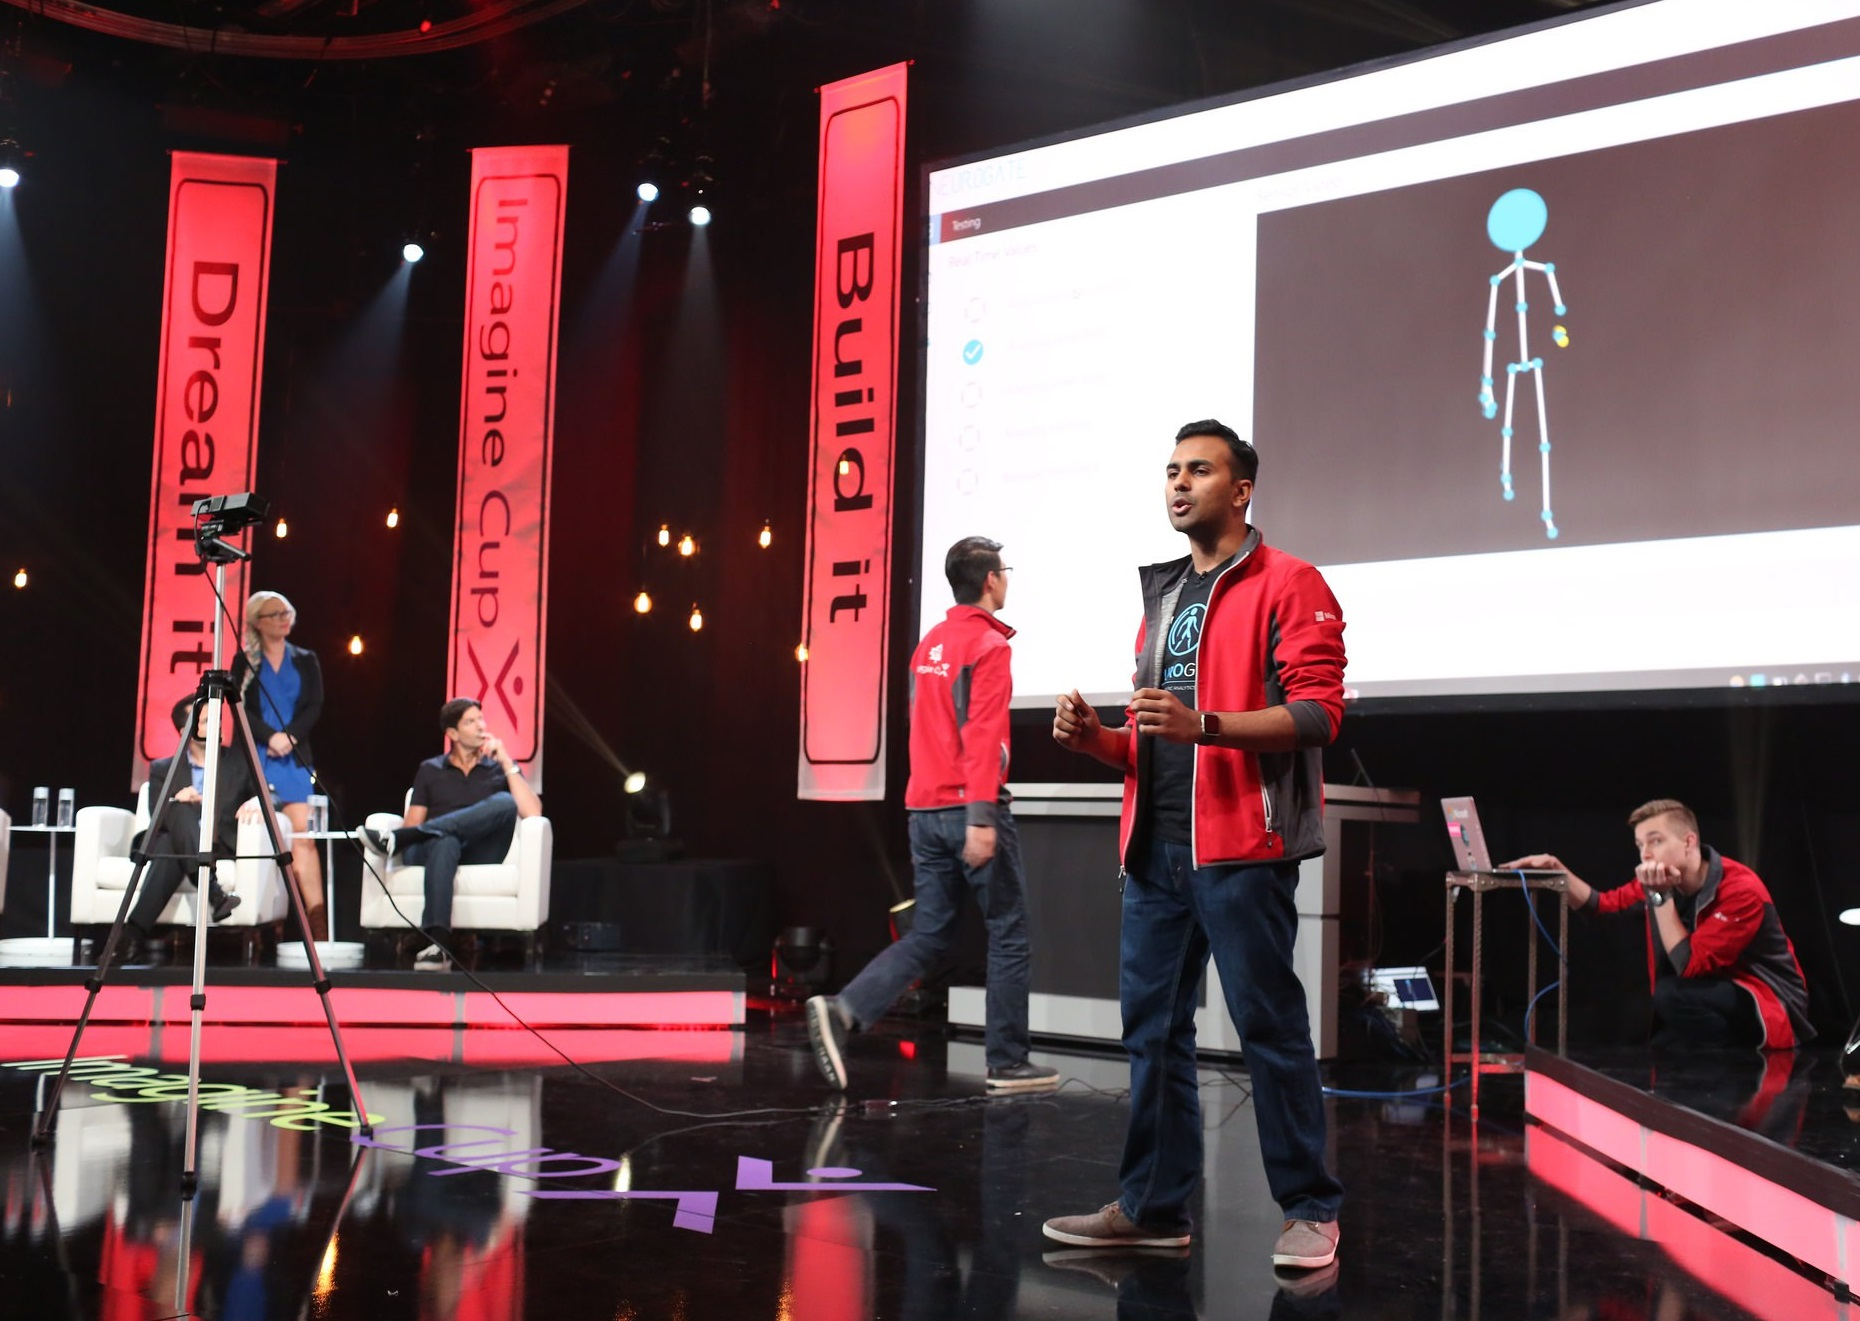 NeuroGate members Zeqi Cui, left, Hrishikesh Suresh, centre, and Declan Goncalves, right, make their pitch and give a demonstration at the Imagine Cup international finals in Redmond, Washington.